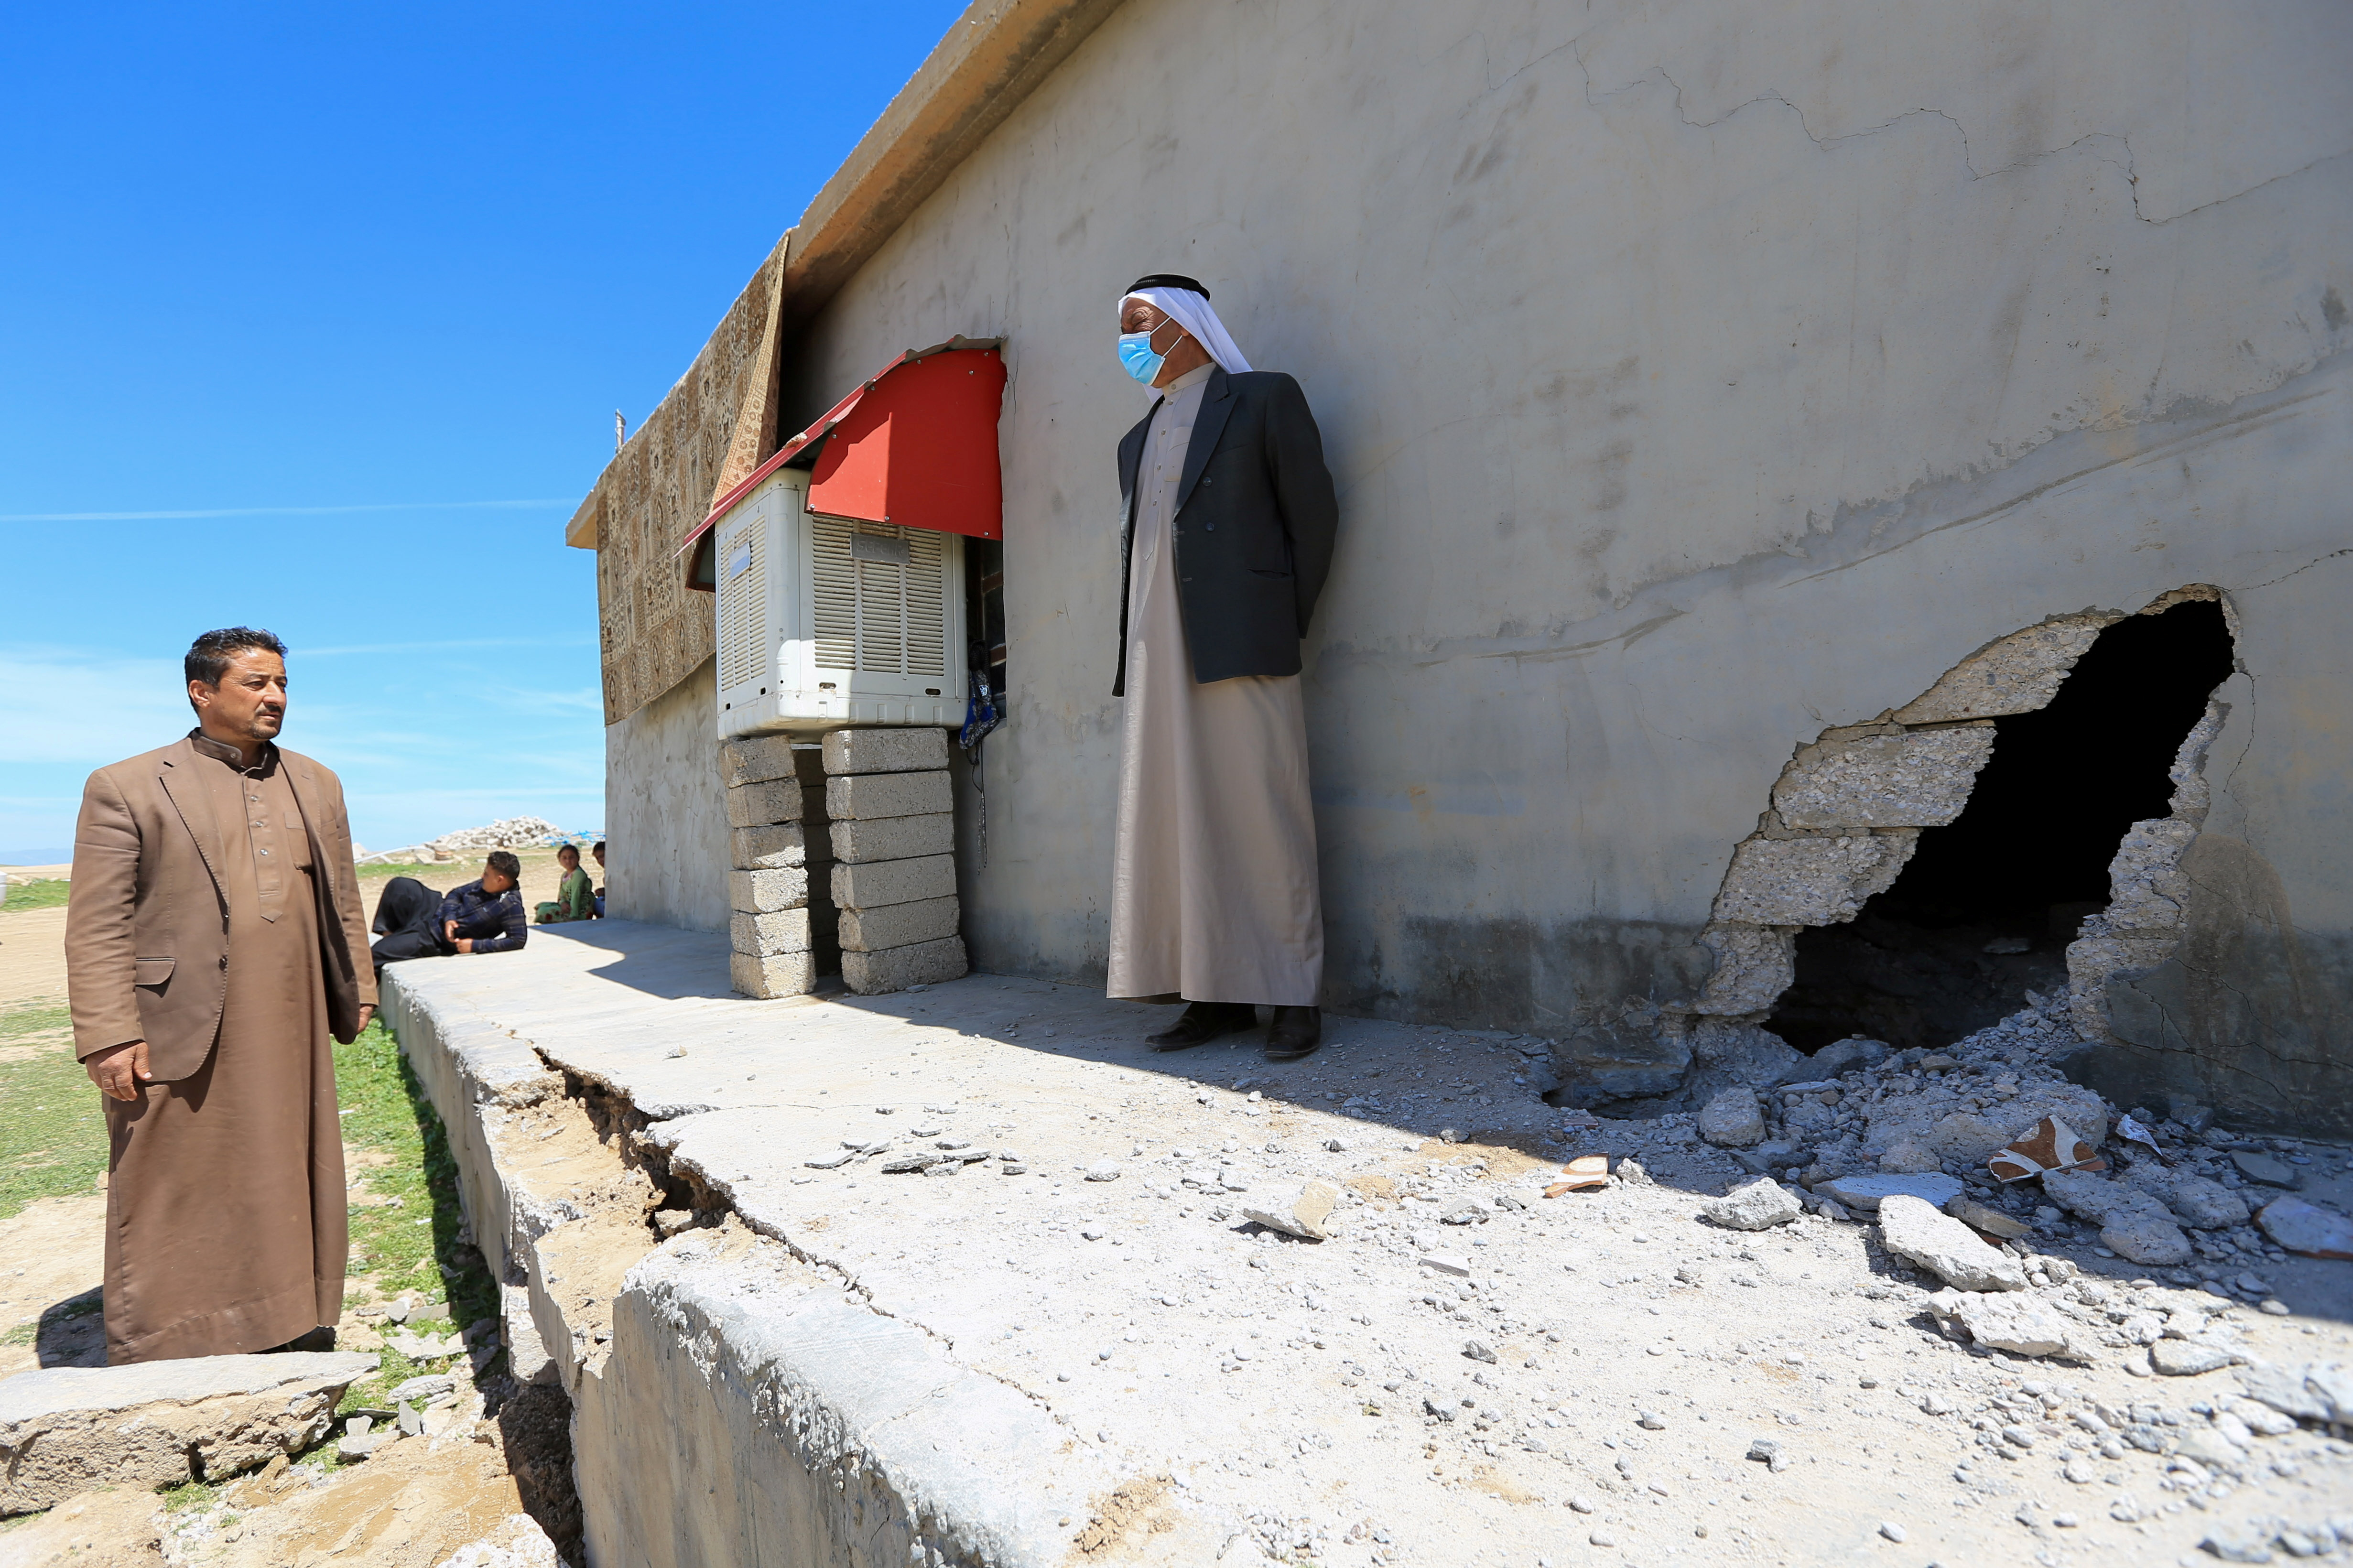 People stand next to a damaged house after a rocket attack on a military compound, at a village in Bashiqa region, Iraq, April 15, 2021. REUTERS/Ari Jalal